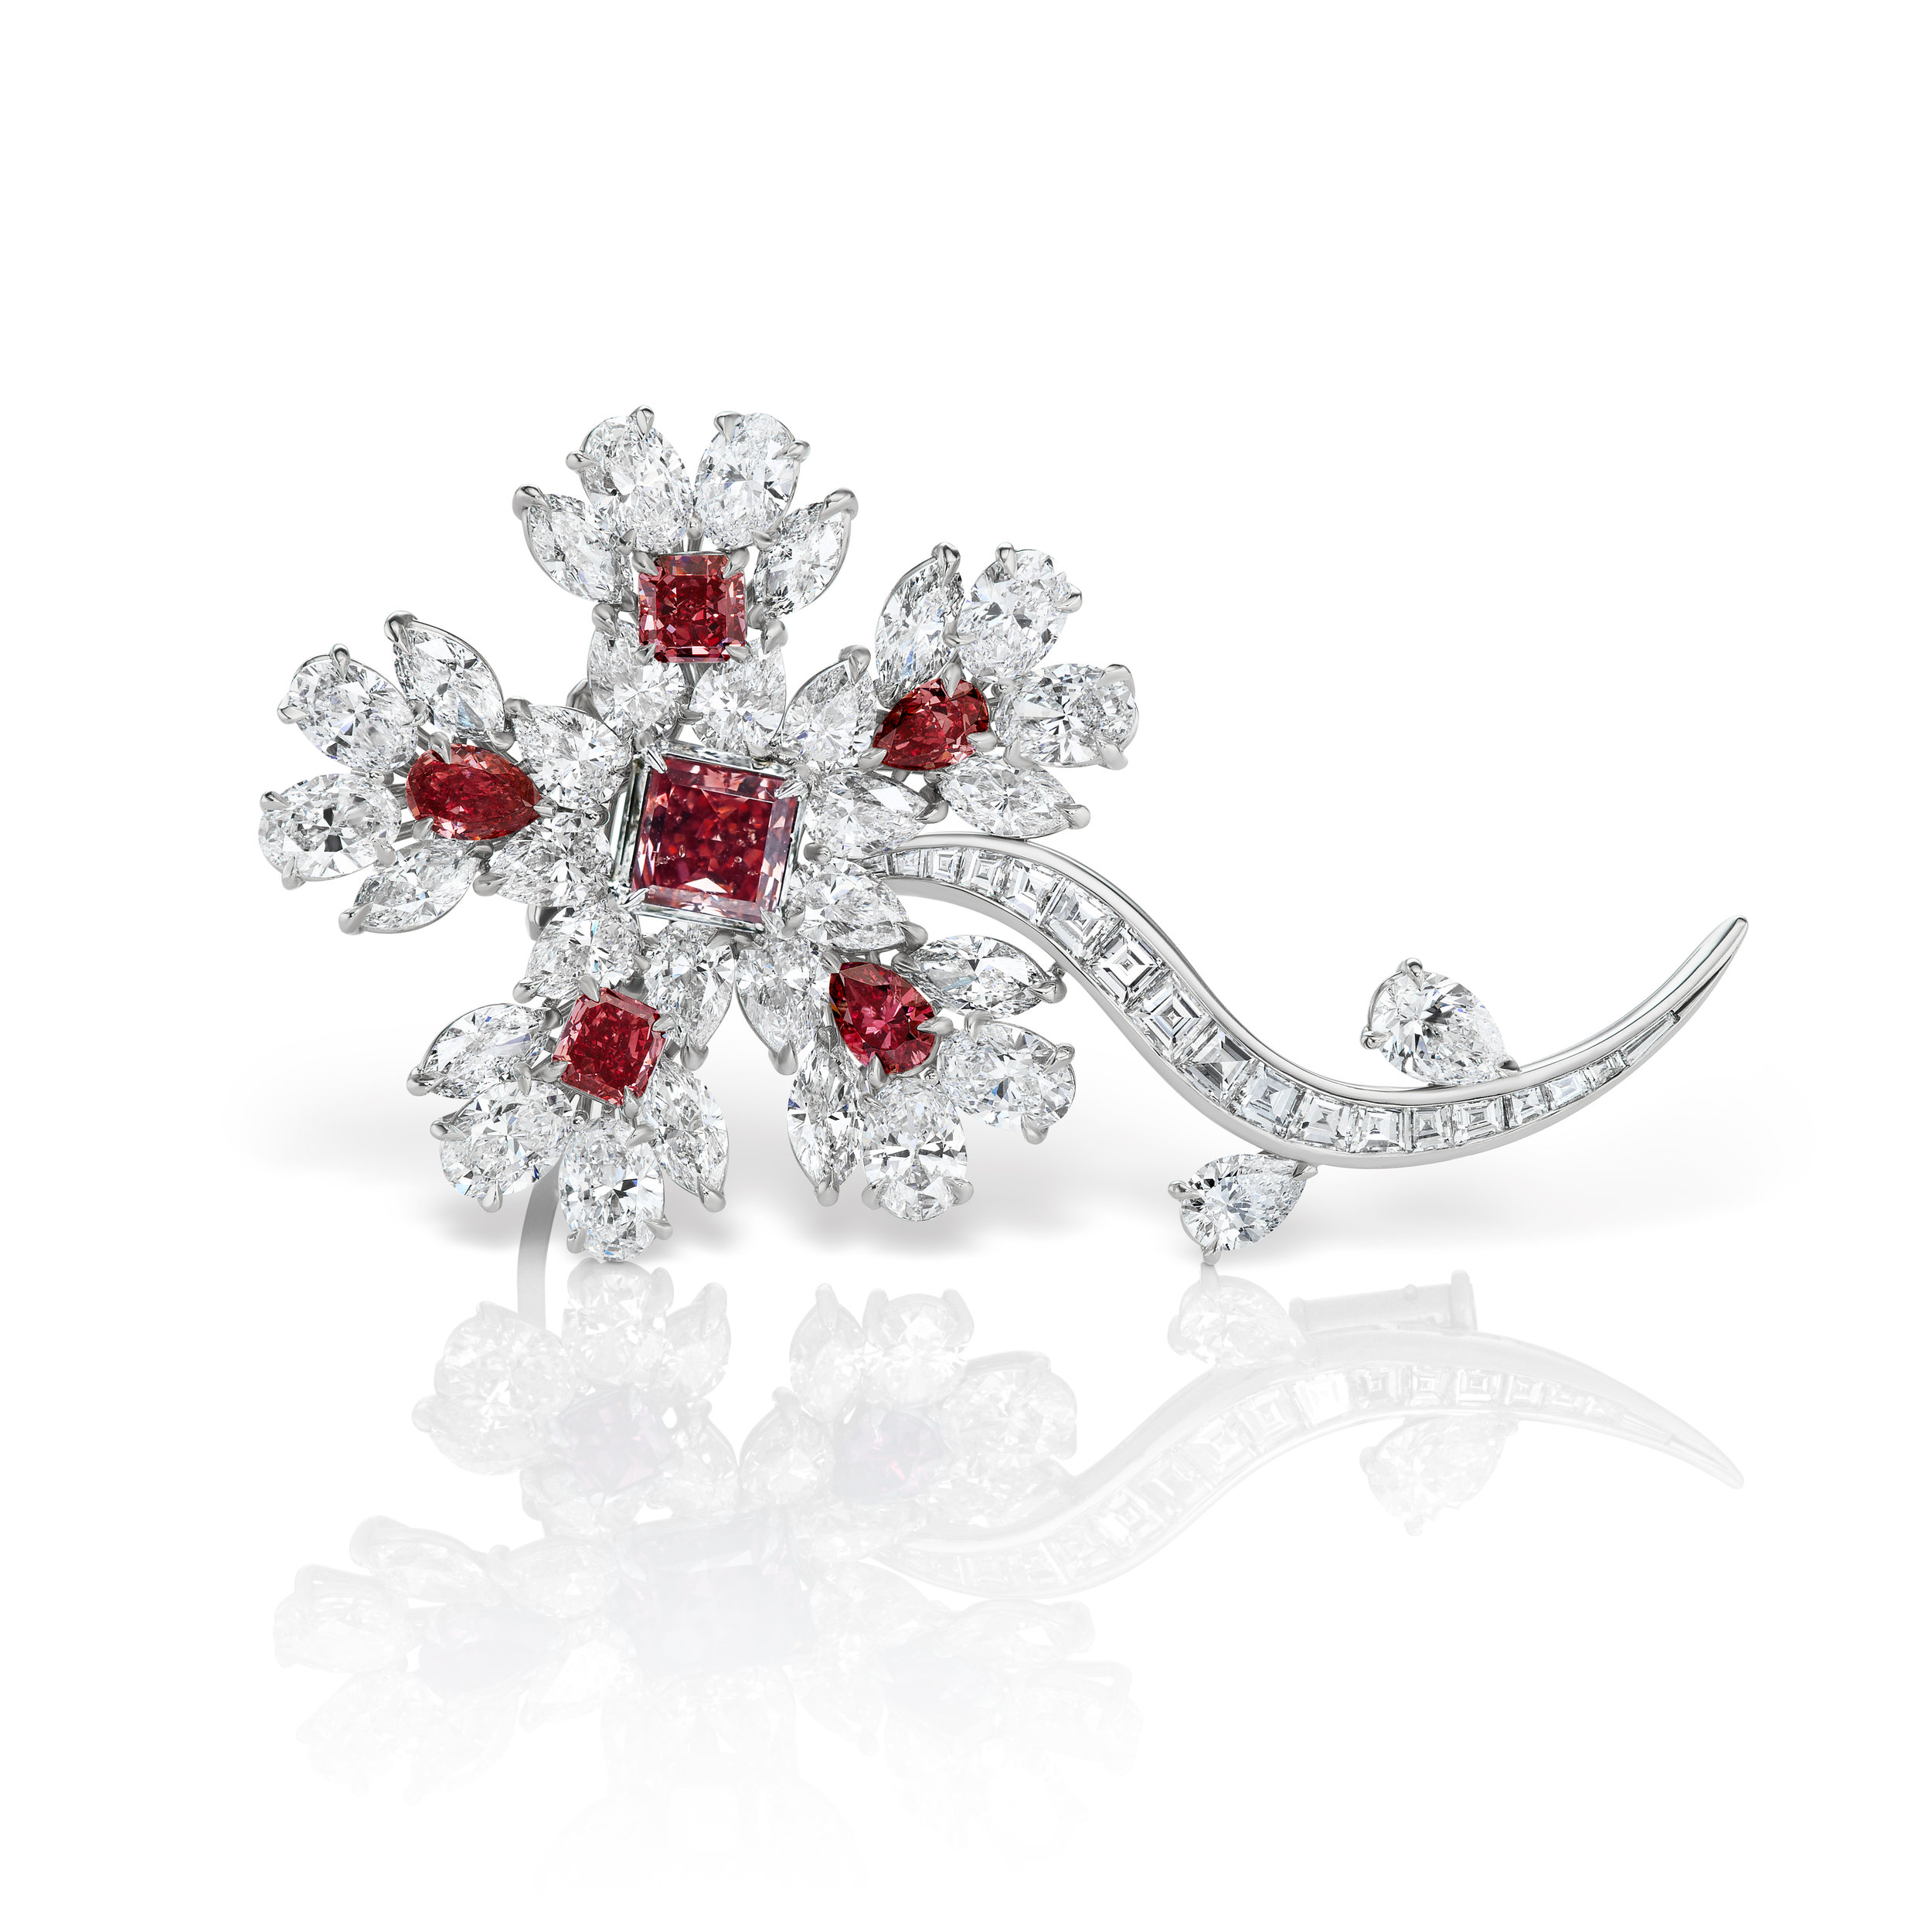 Scott West - The Red Winter Flower featuring five natural red diamonds